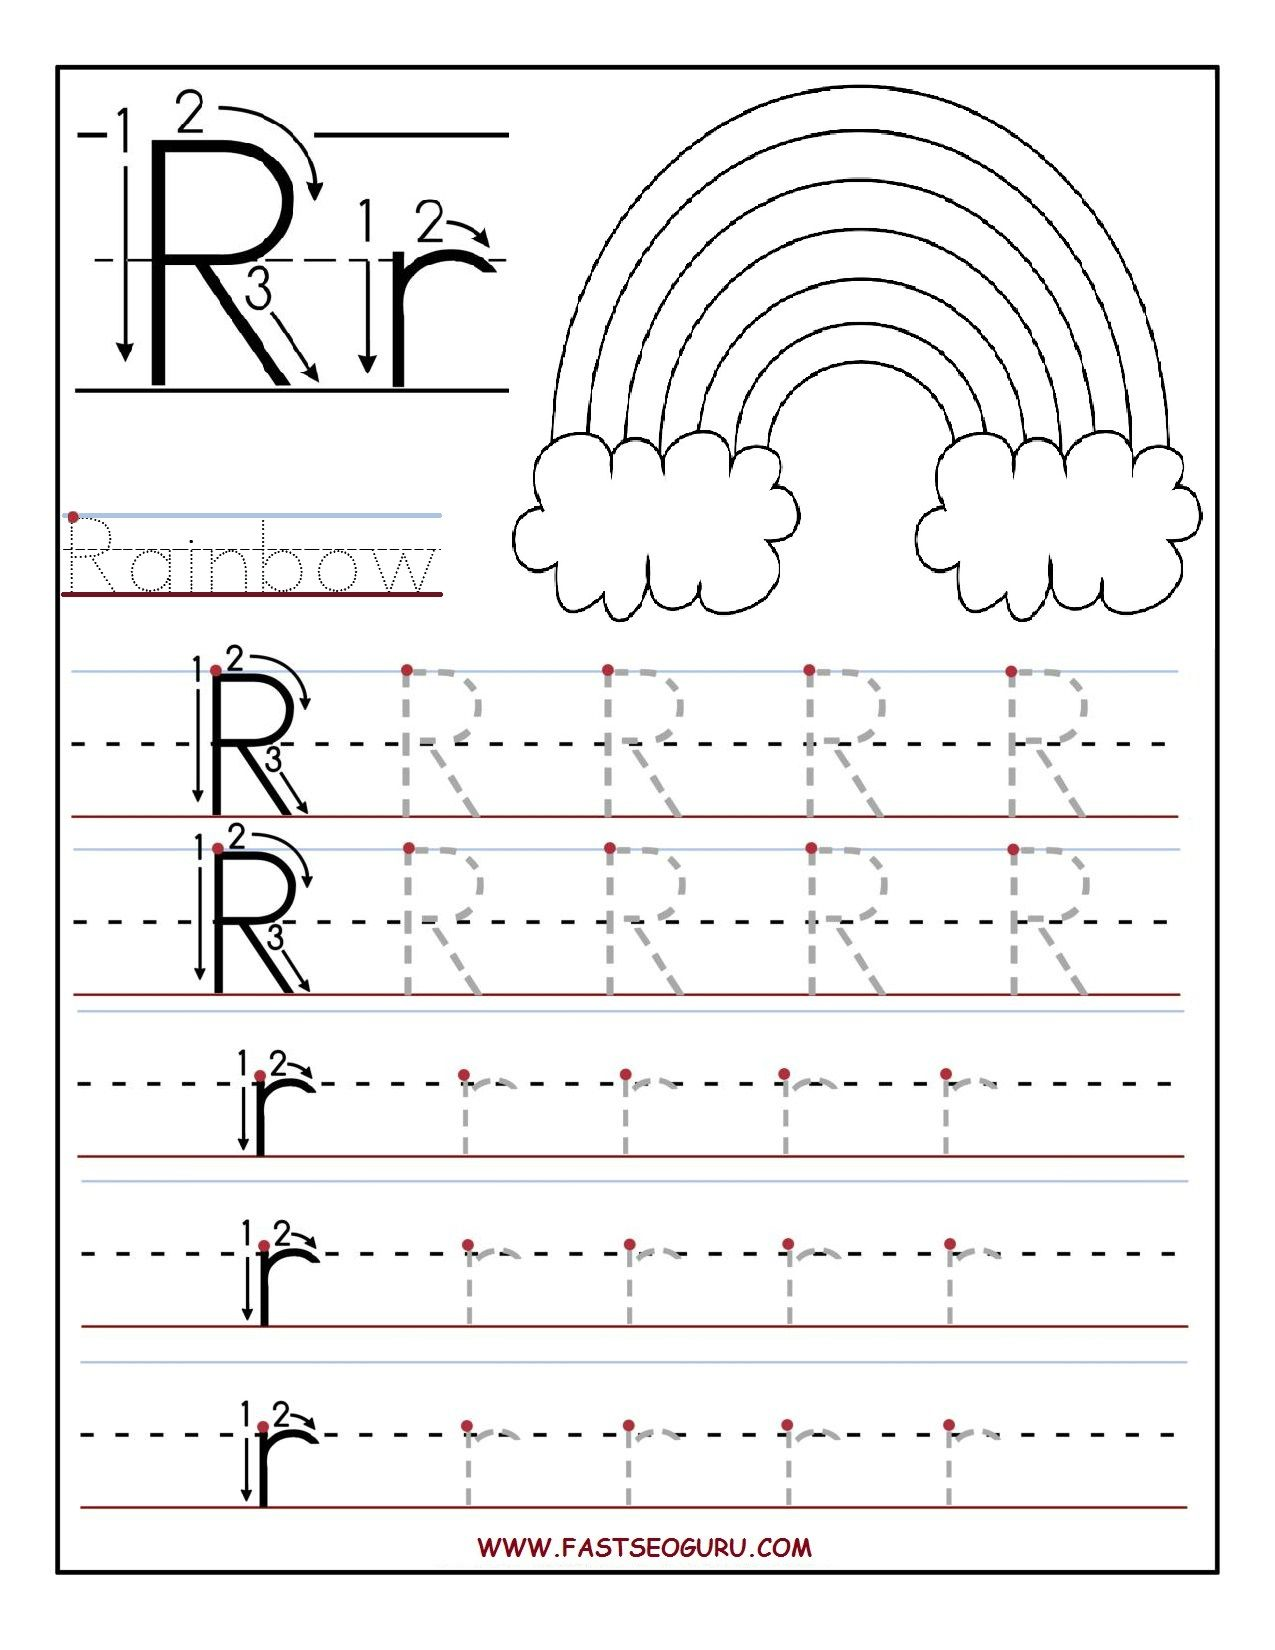 Printable letter R tracing worksheets for preschool | Summer School ...